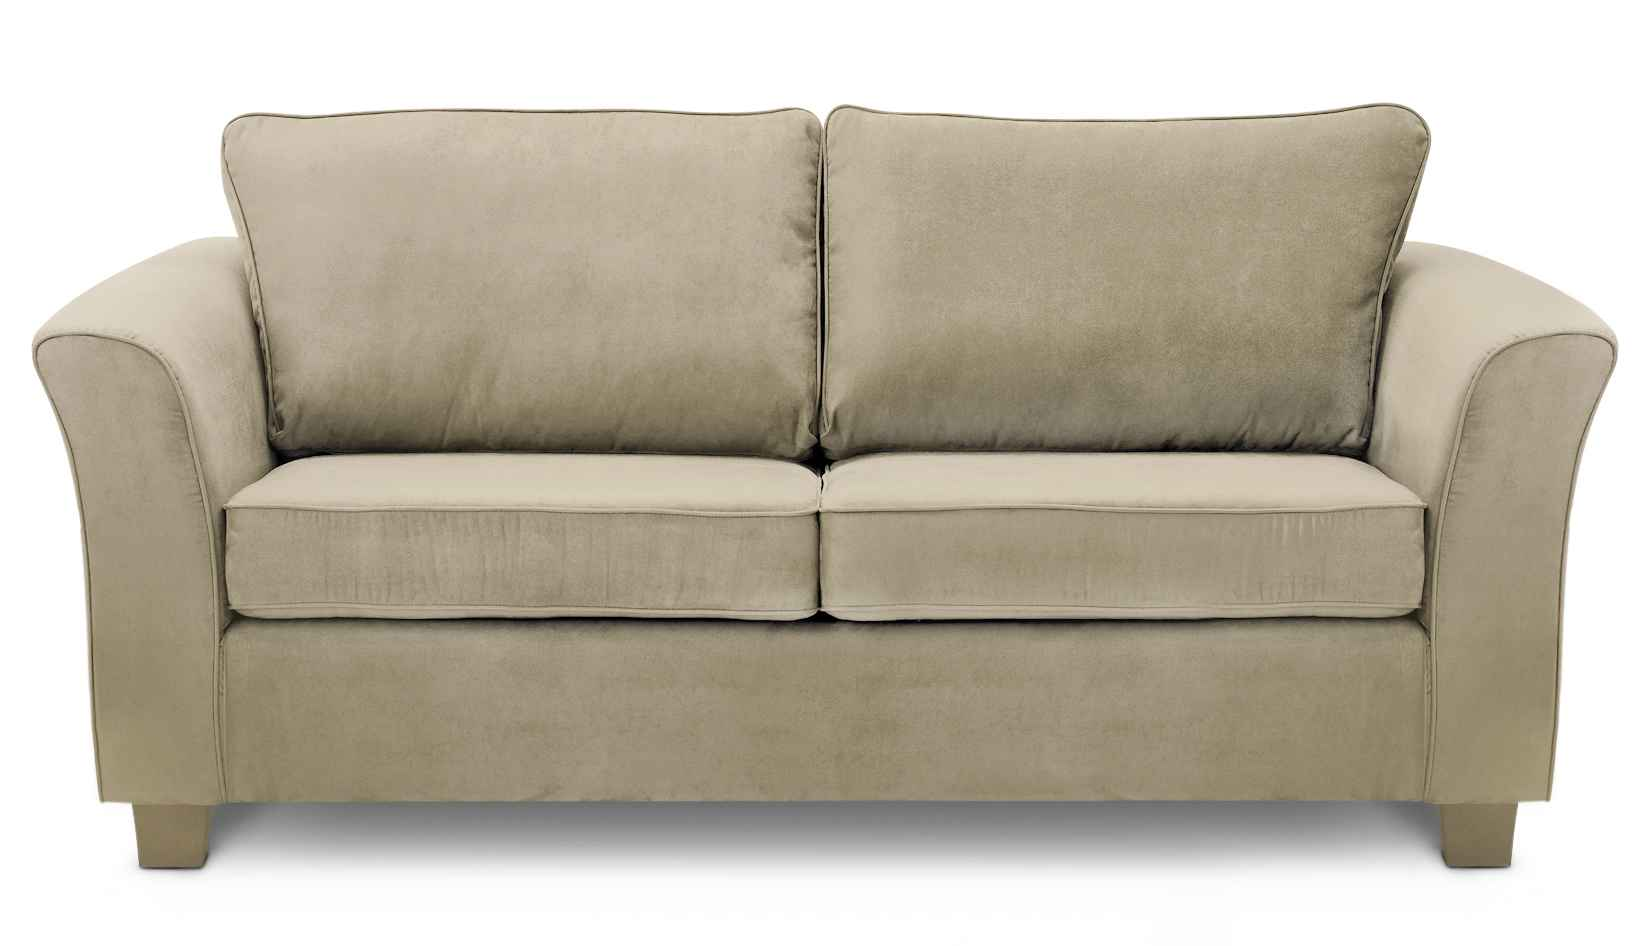 Cheap furniture feel the home for Sofa couch for sale